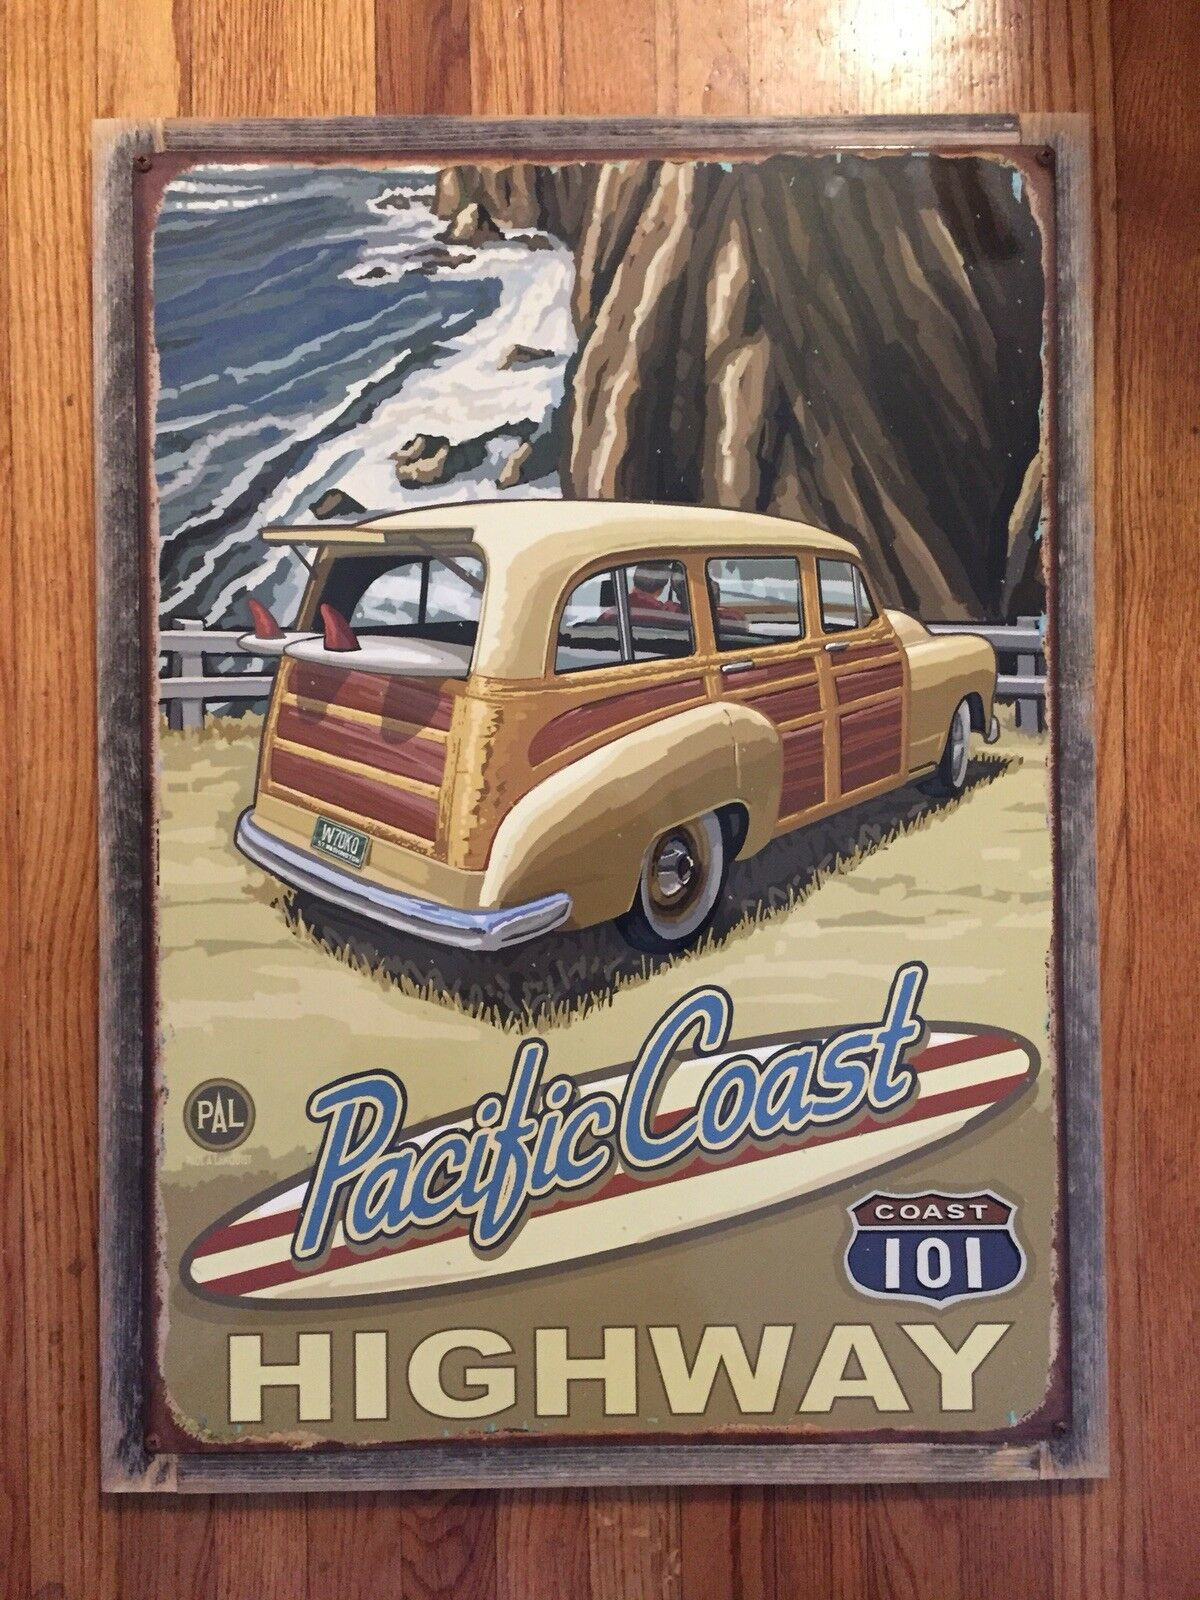 PCH Pacific Coast Highway California Surf Surfing Woodie Vintage Framed Steel Po